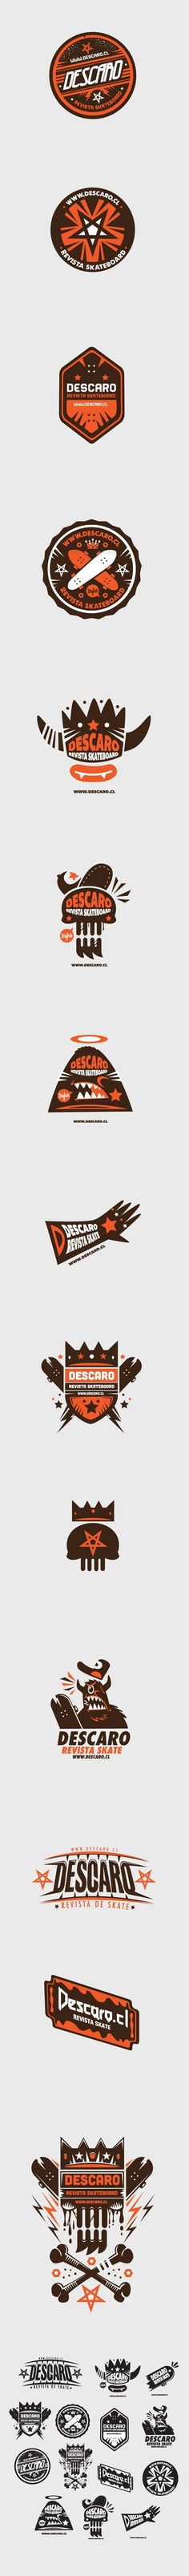 Logo collection Descaro skate Magazine by New Fren #design #graphic